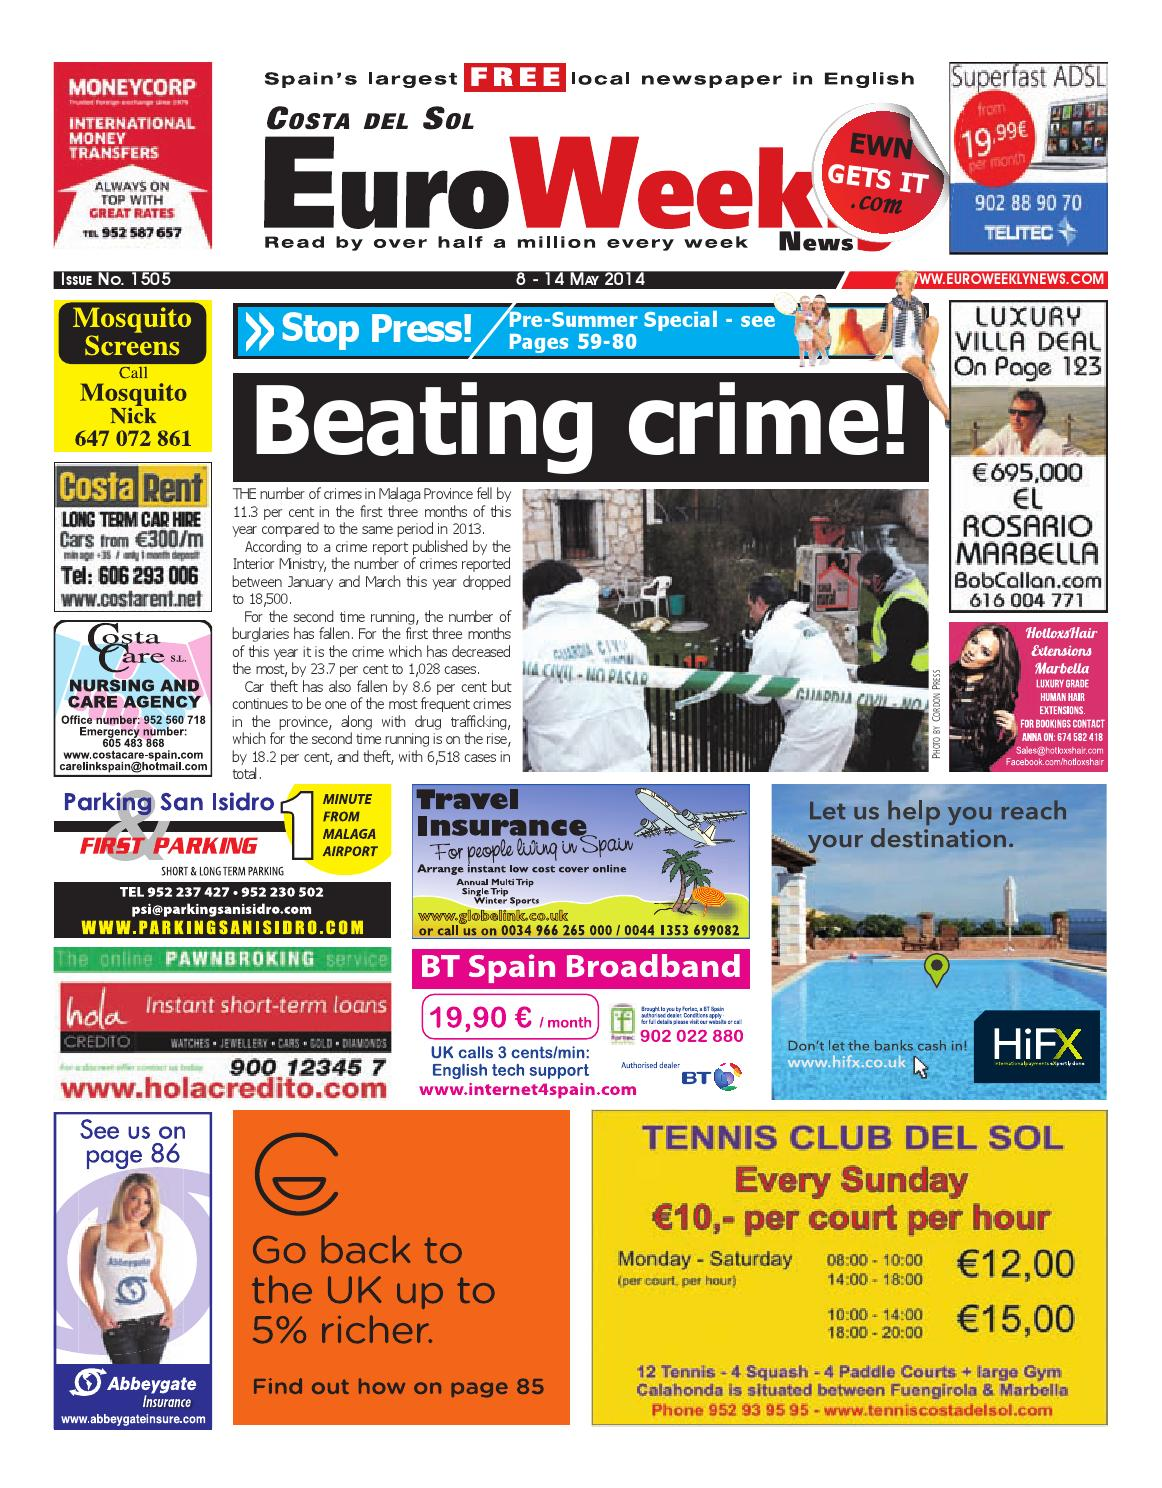 Euro Weekly News - Costa del Sol 8 - 14 May 2014 Issue 1505